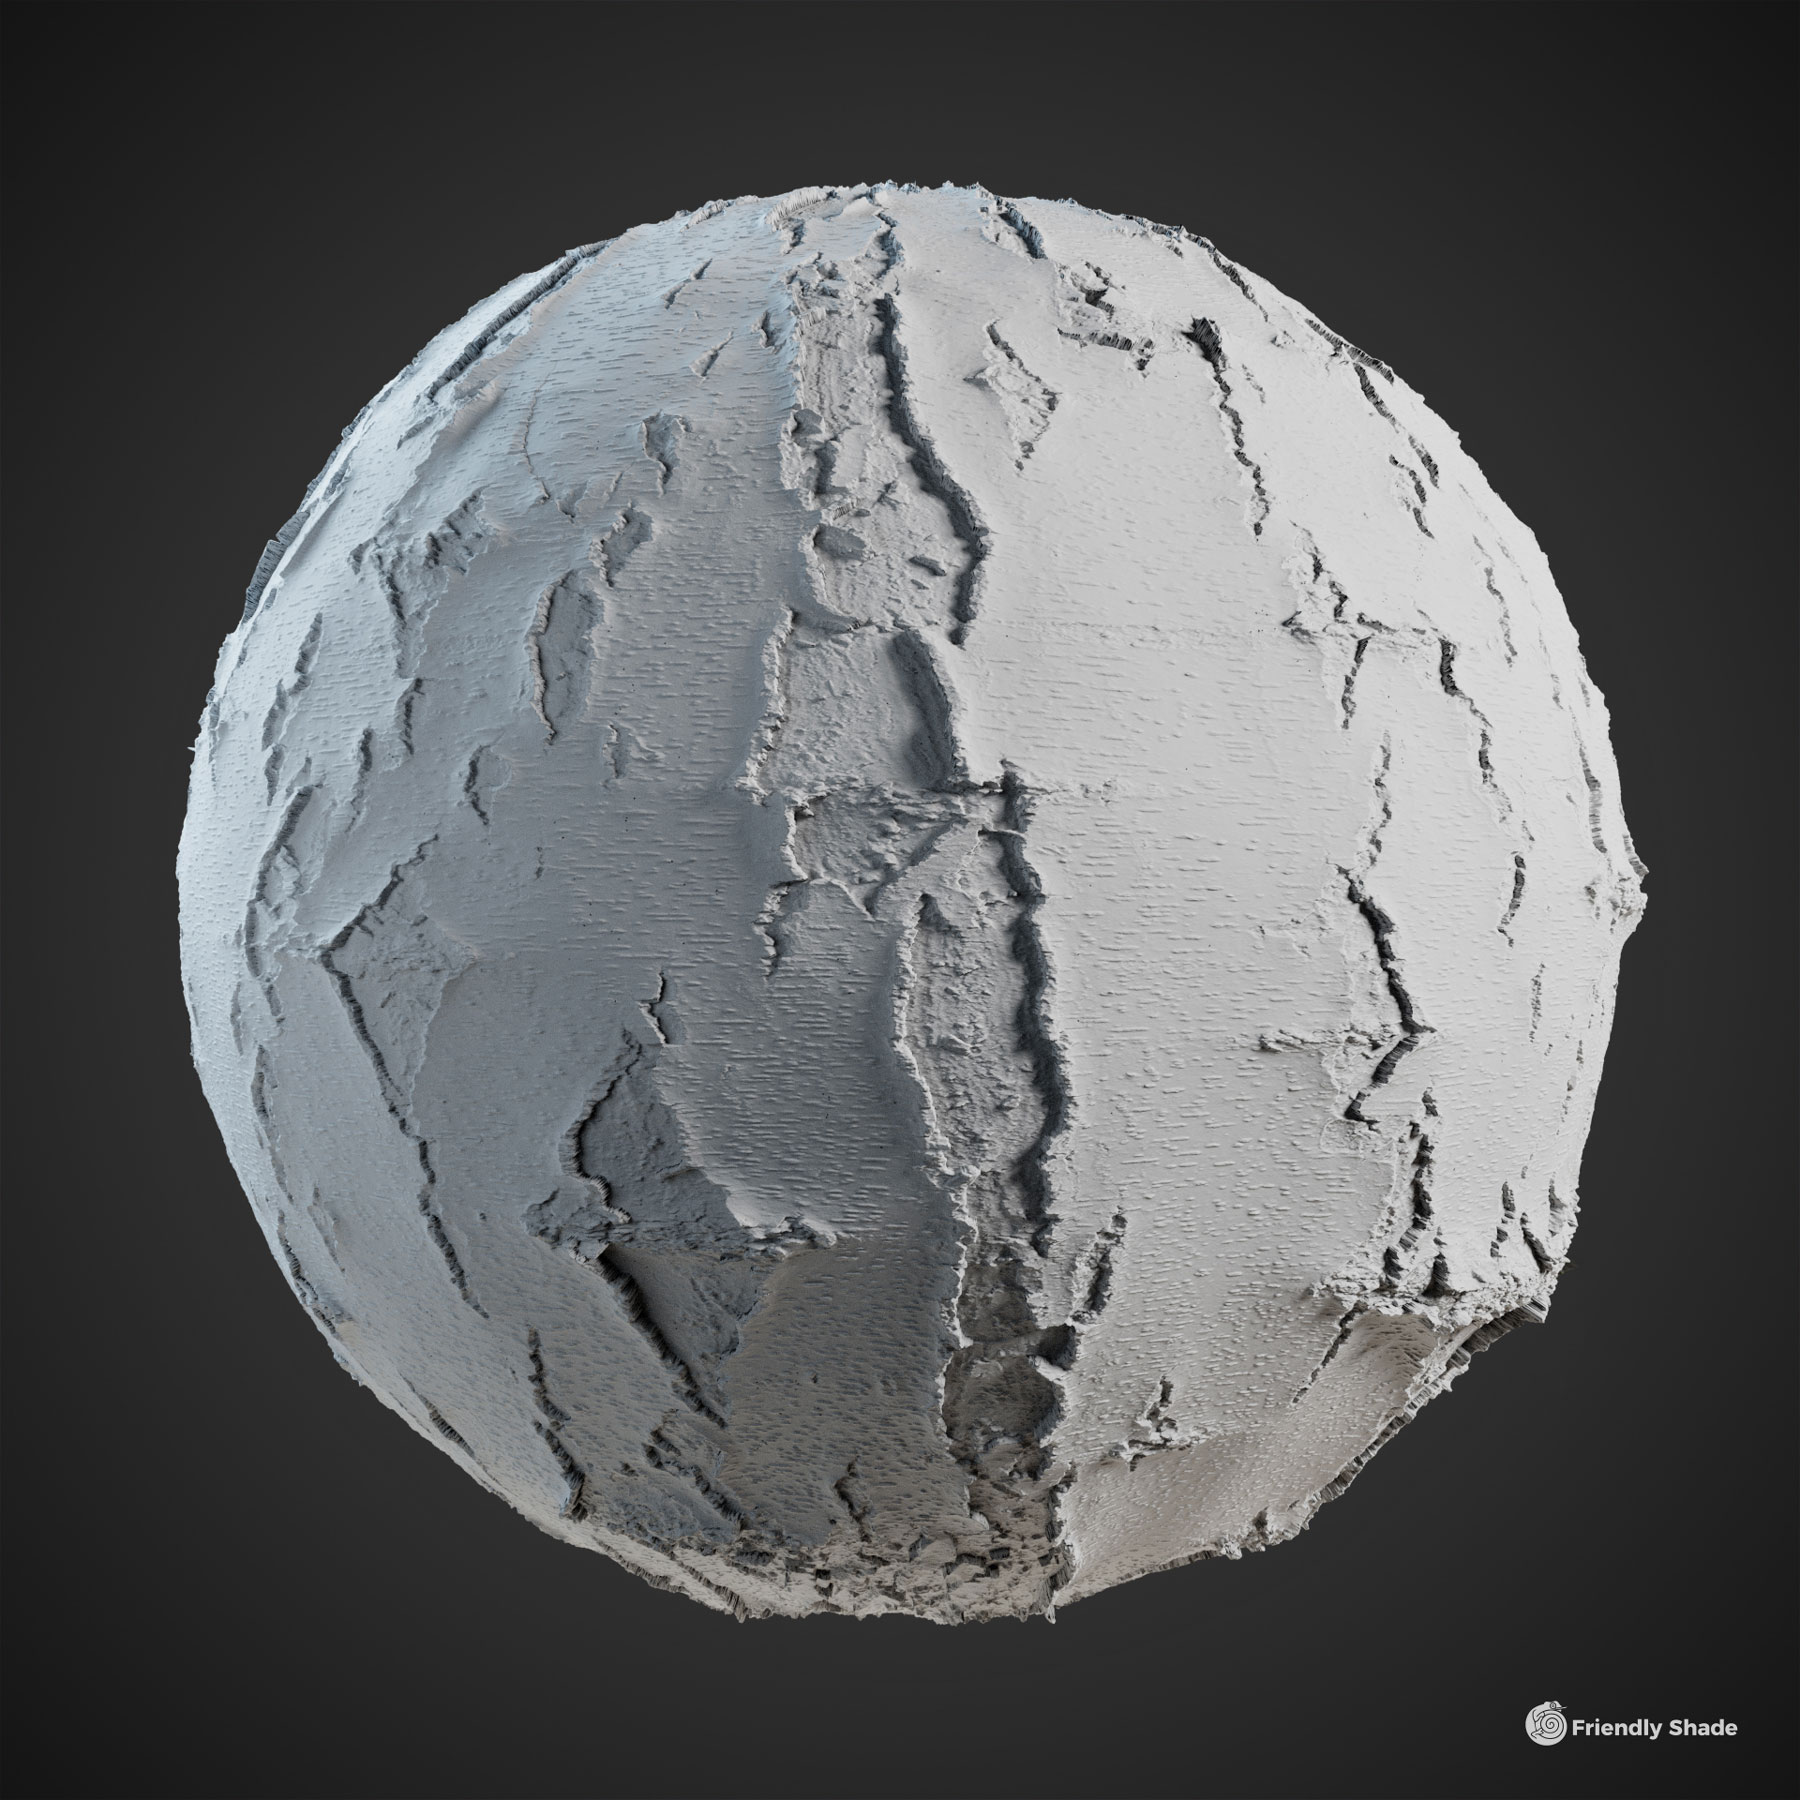 The image shows a clay sphere with our Birch Tree Bark texture